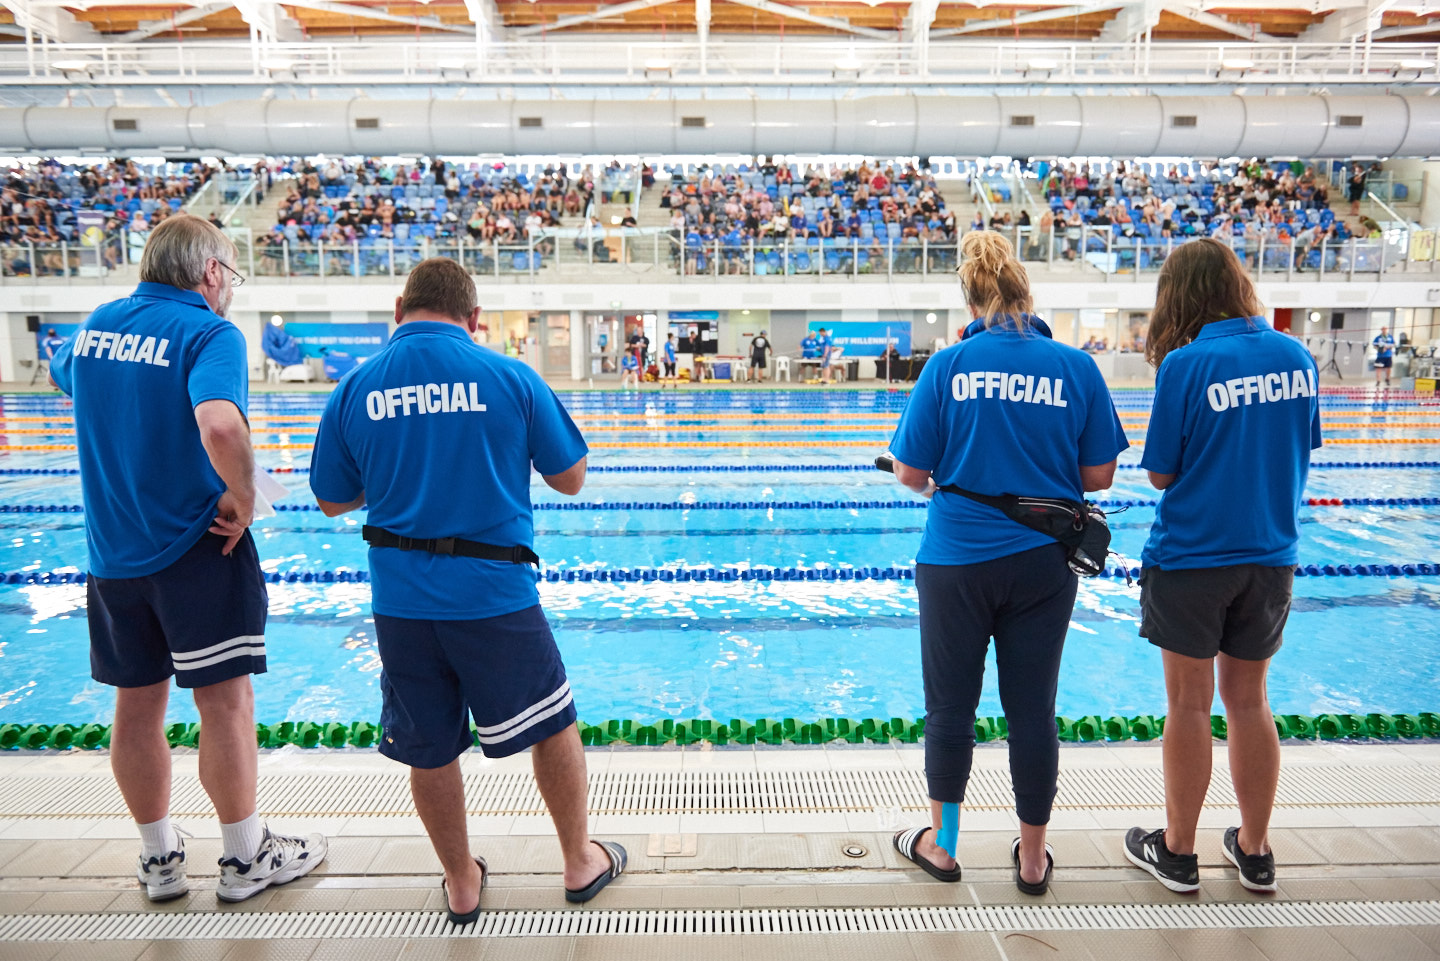 BEX_20181012_093342_SLSNZ_pool_champs_small.jpg